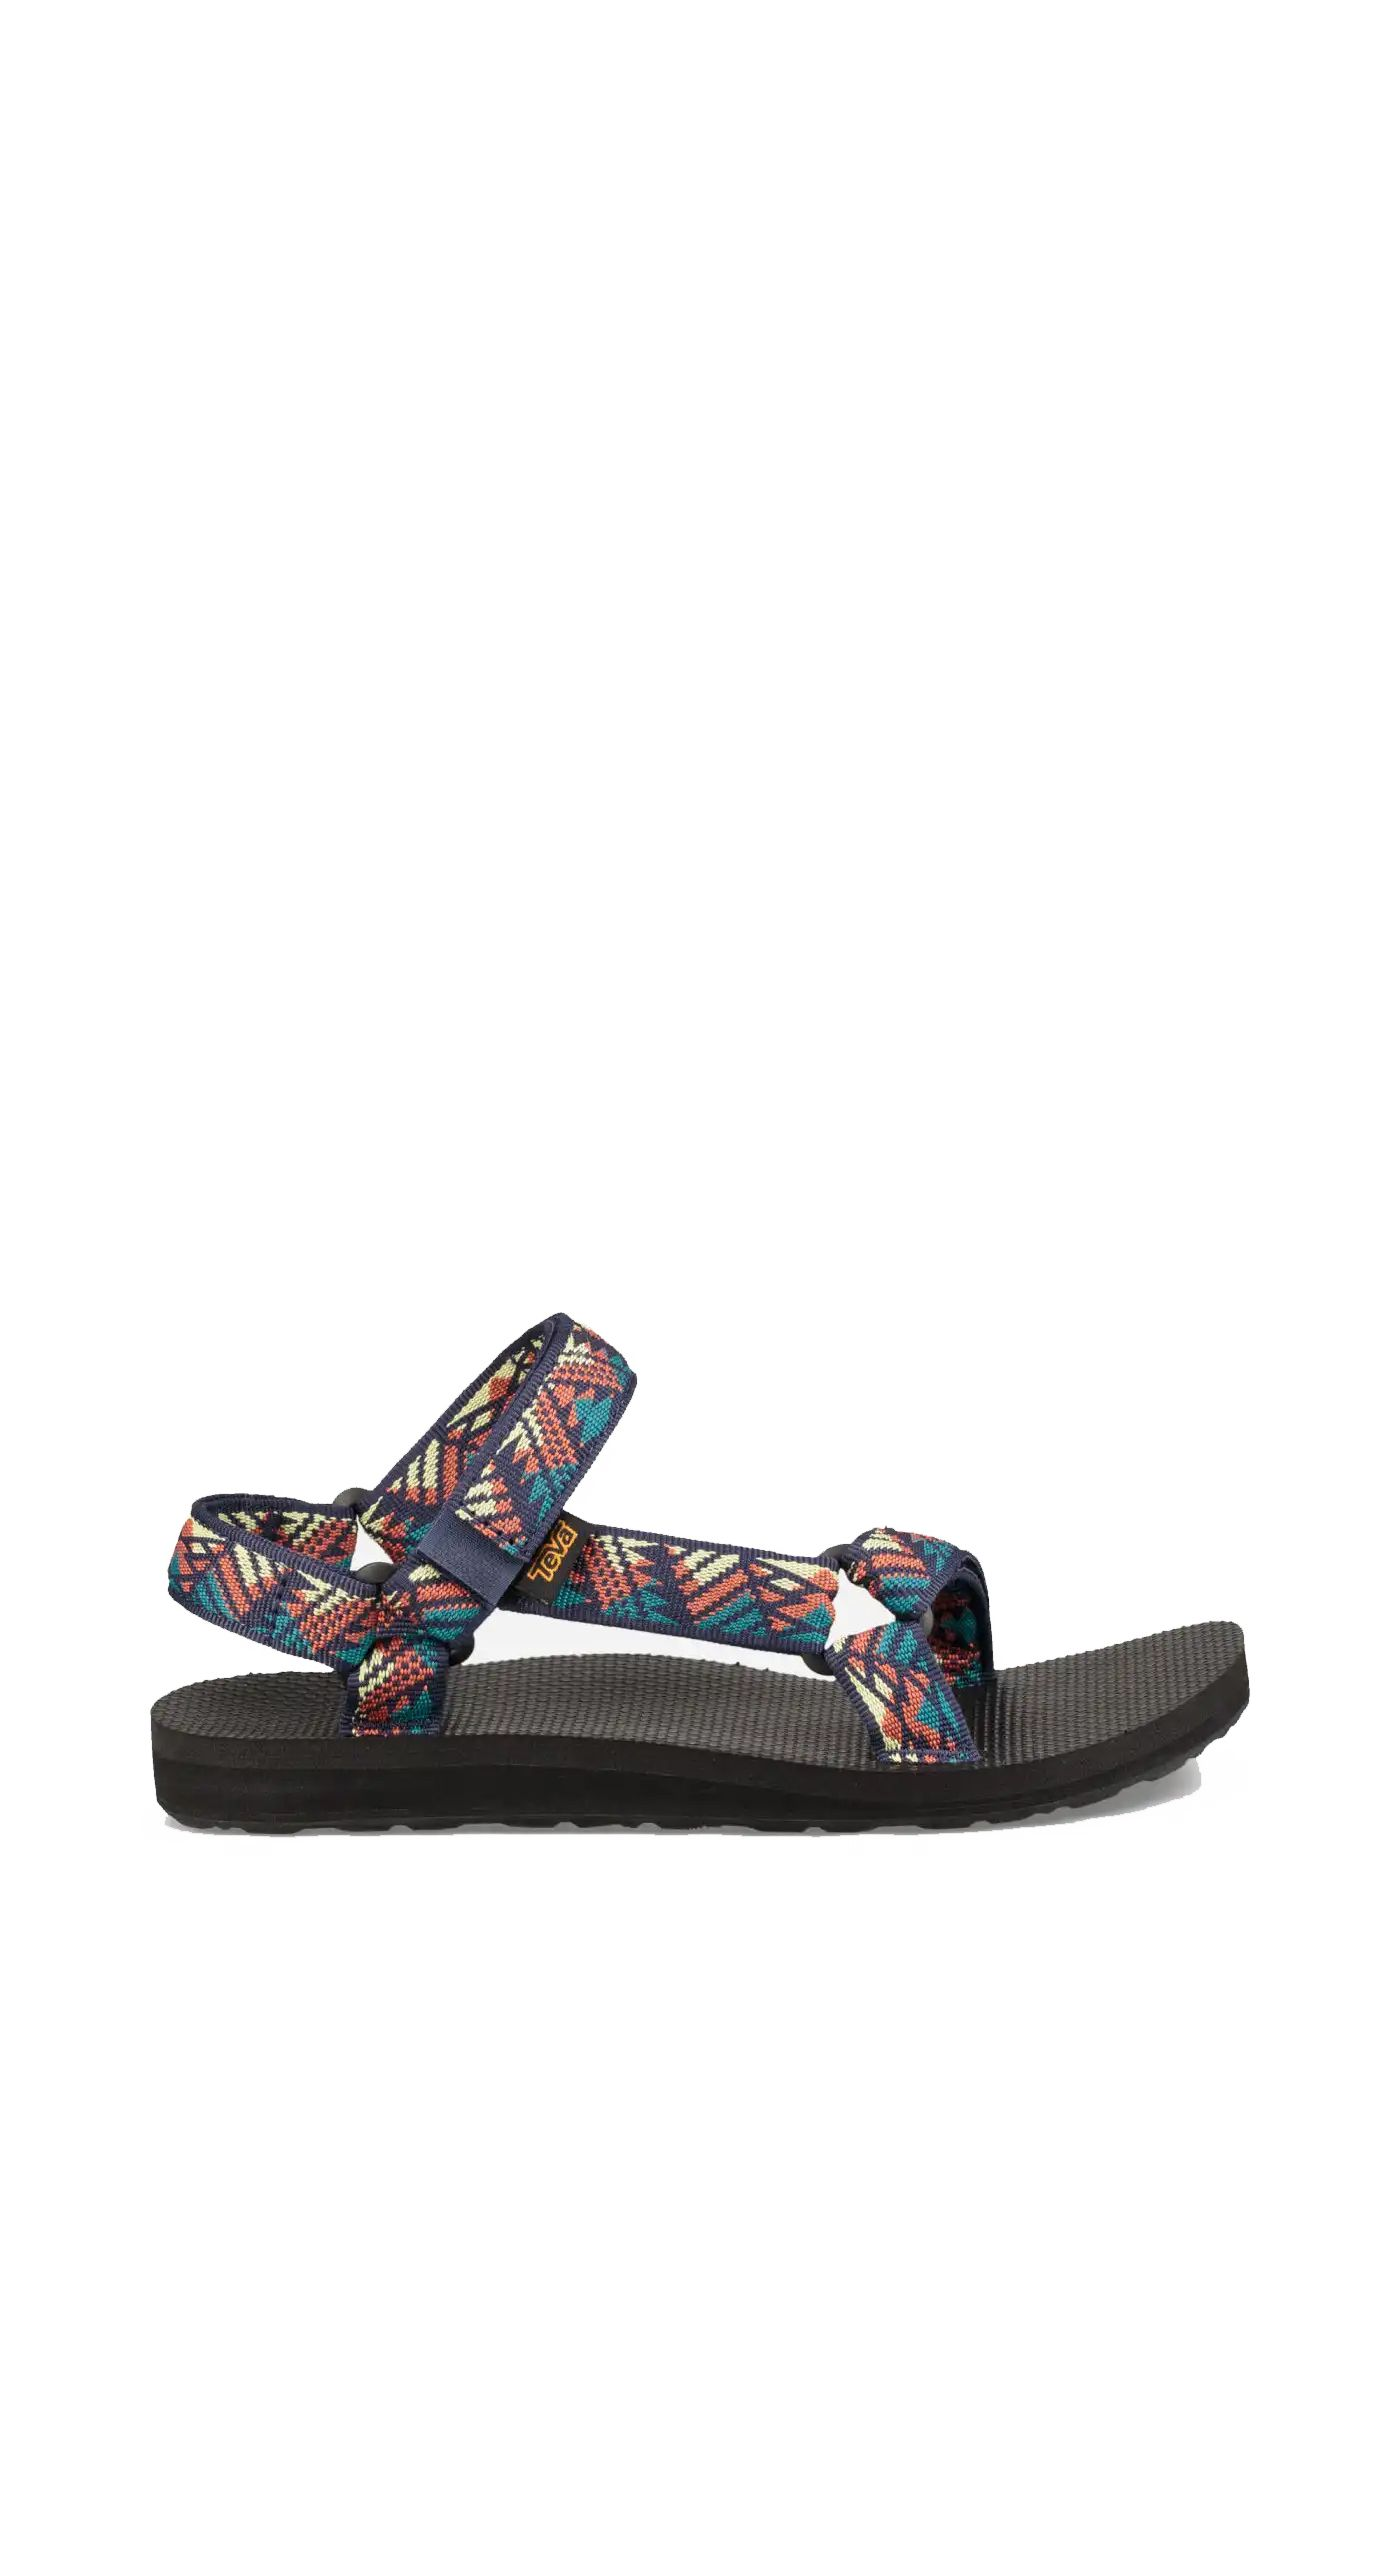 Wear Tevas You Sandals Love Sport The Shoes If To vN8nw0m